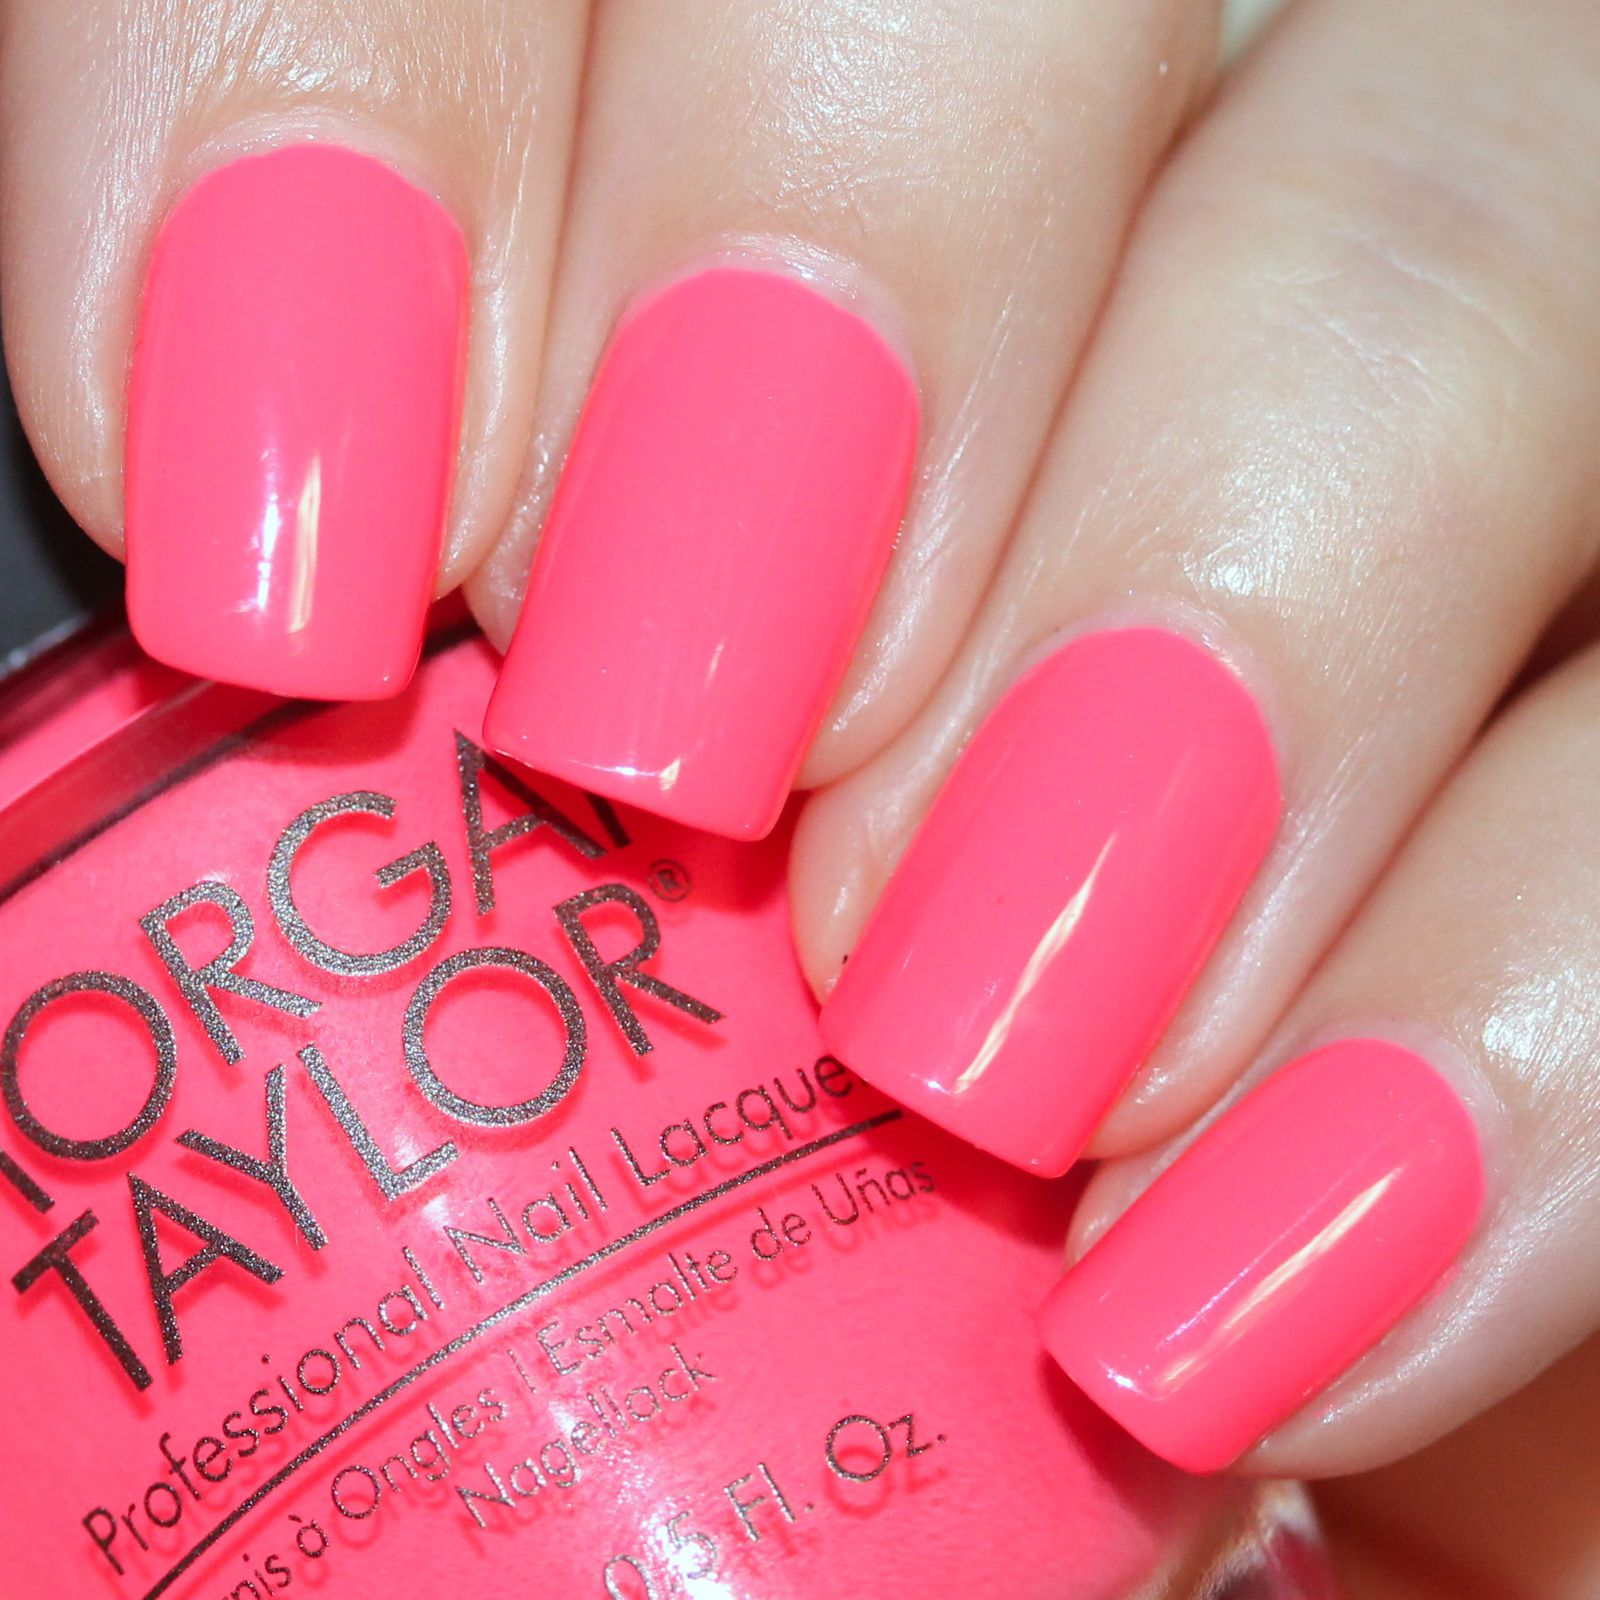 Sally Hansen Complete Care 4-in-1 Extra Moisturizing Nail Treatment / Morgan Taylor Pink Flame-ingo / Poshe Top Coat